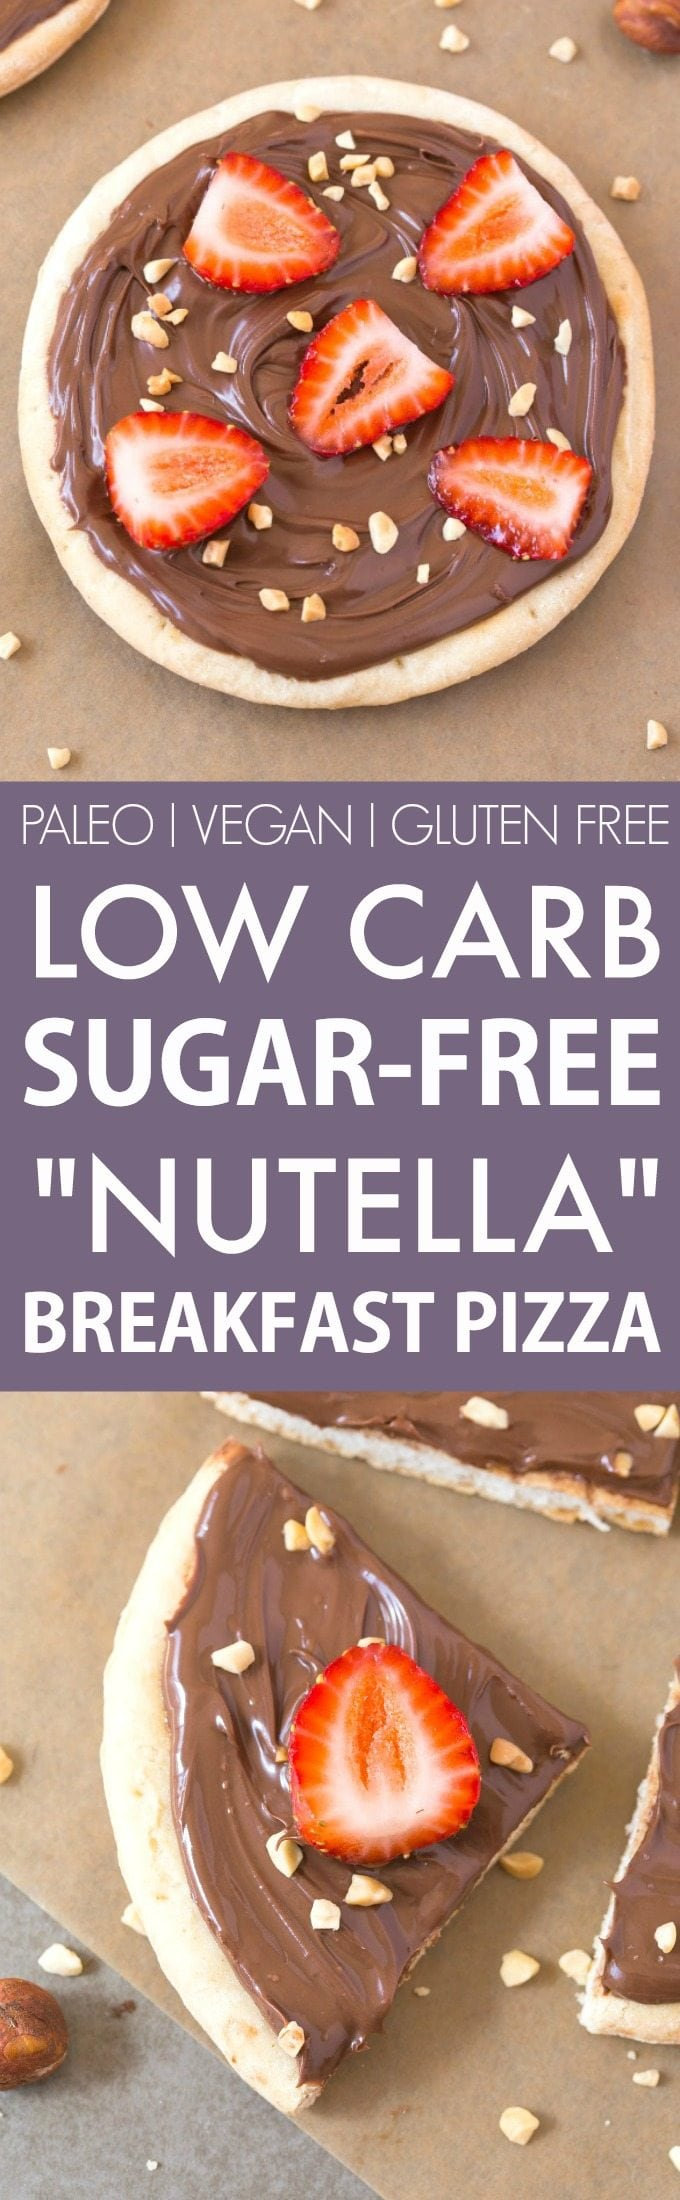 "Healthy Low Carb Sugar Free ""Nutella"" Breakfast Pizza (V, GF, Paleo)- A thin and crispy low carb pizza crust topped with a creamy and sugar-free hazelnut spread! It's filling and like dessert for breakfast! {vegan, gluten free, paleo recipe}- thebigmansworld.com"